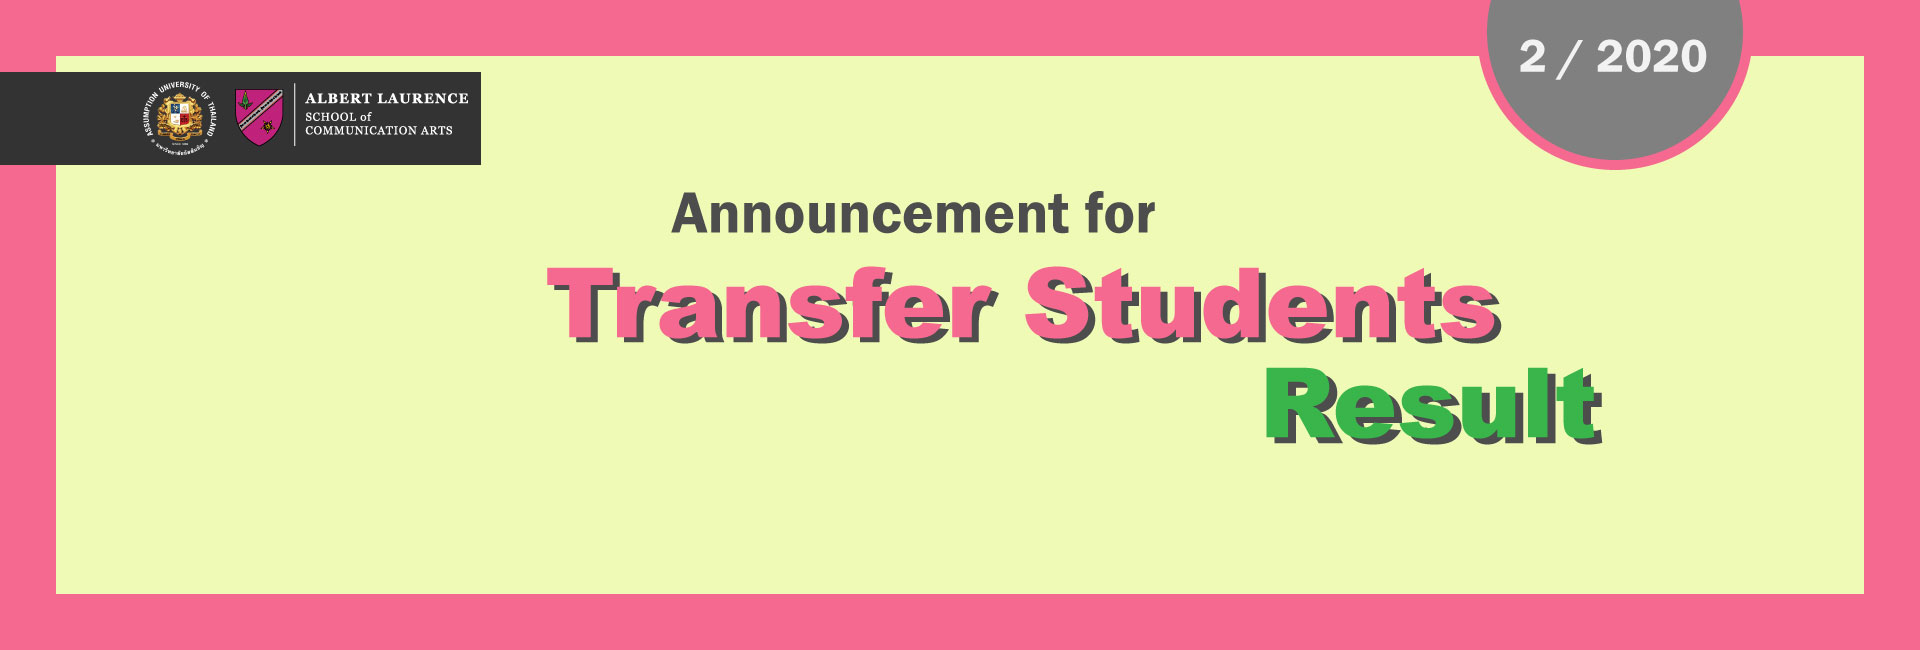 transfer_announcement_result